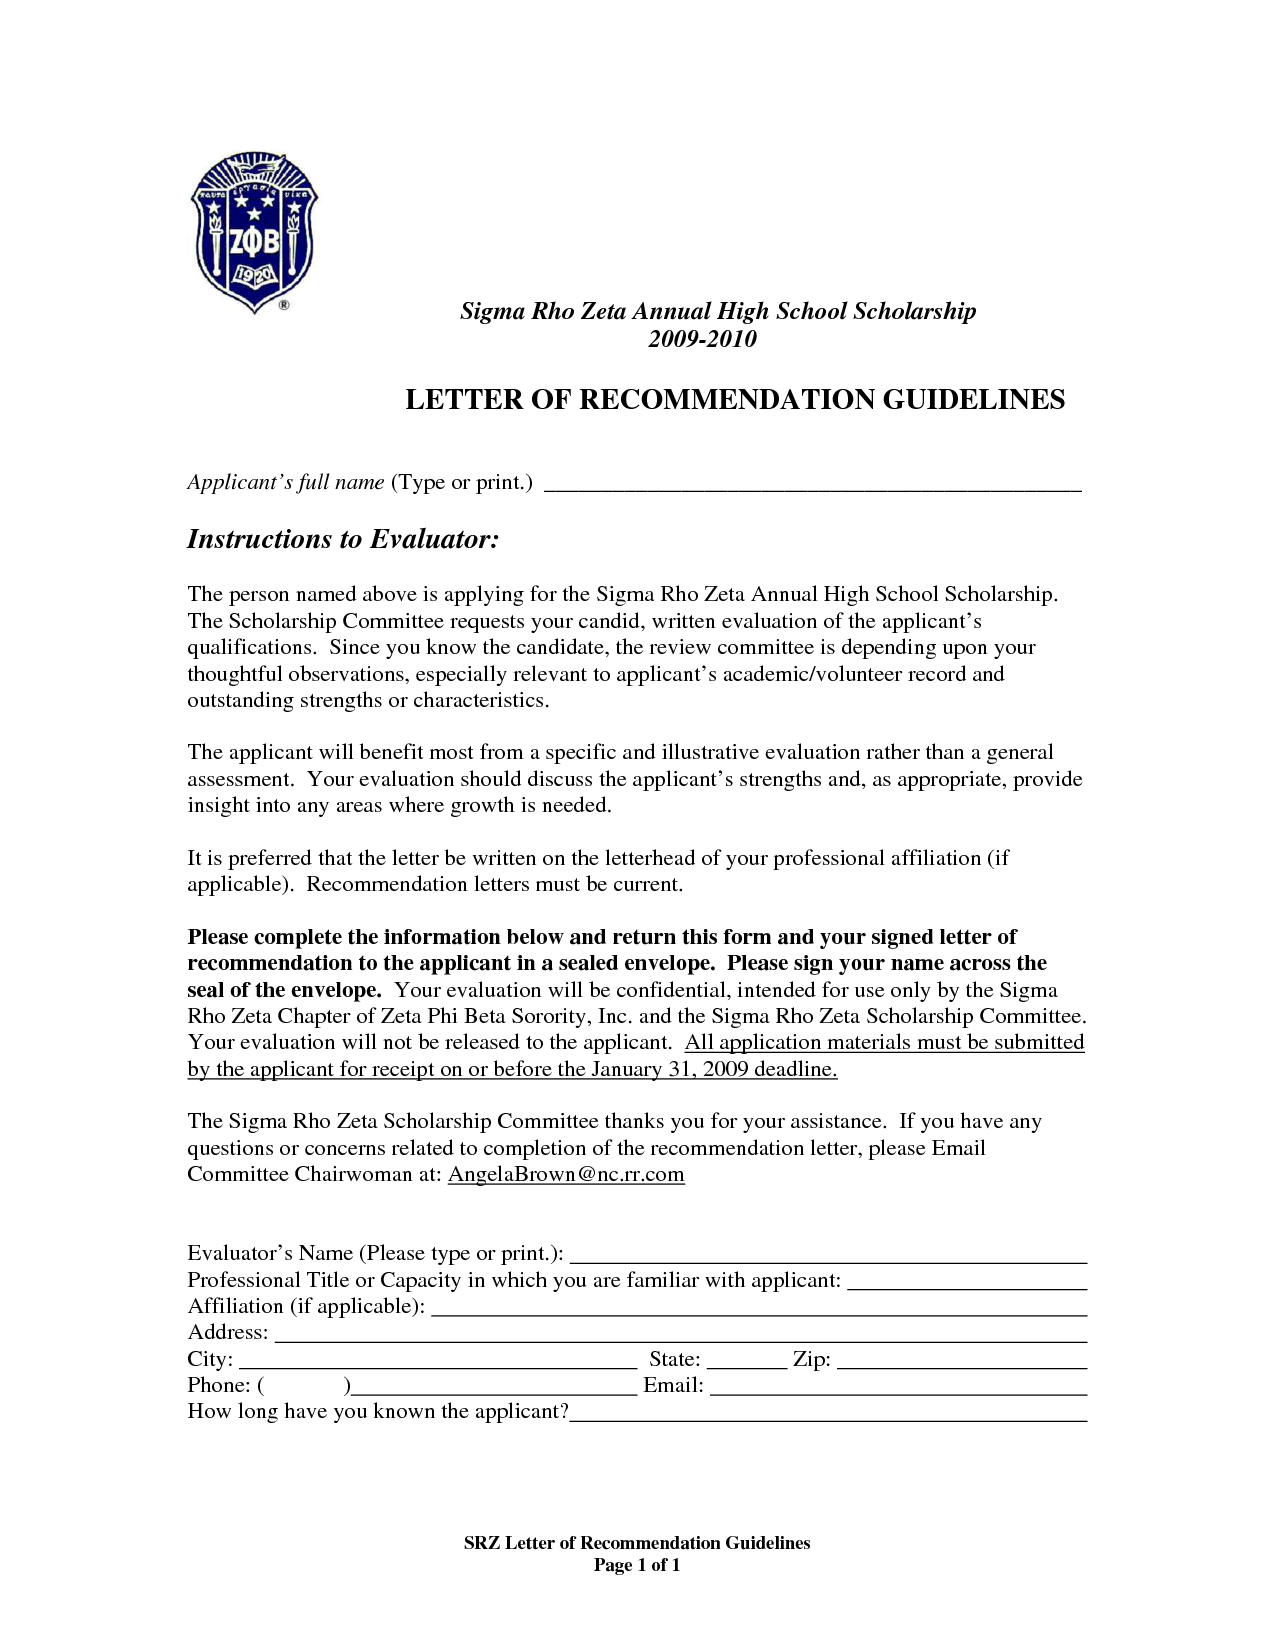 Scholarship Recommendation Letter Format payroll payslip template